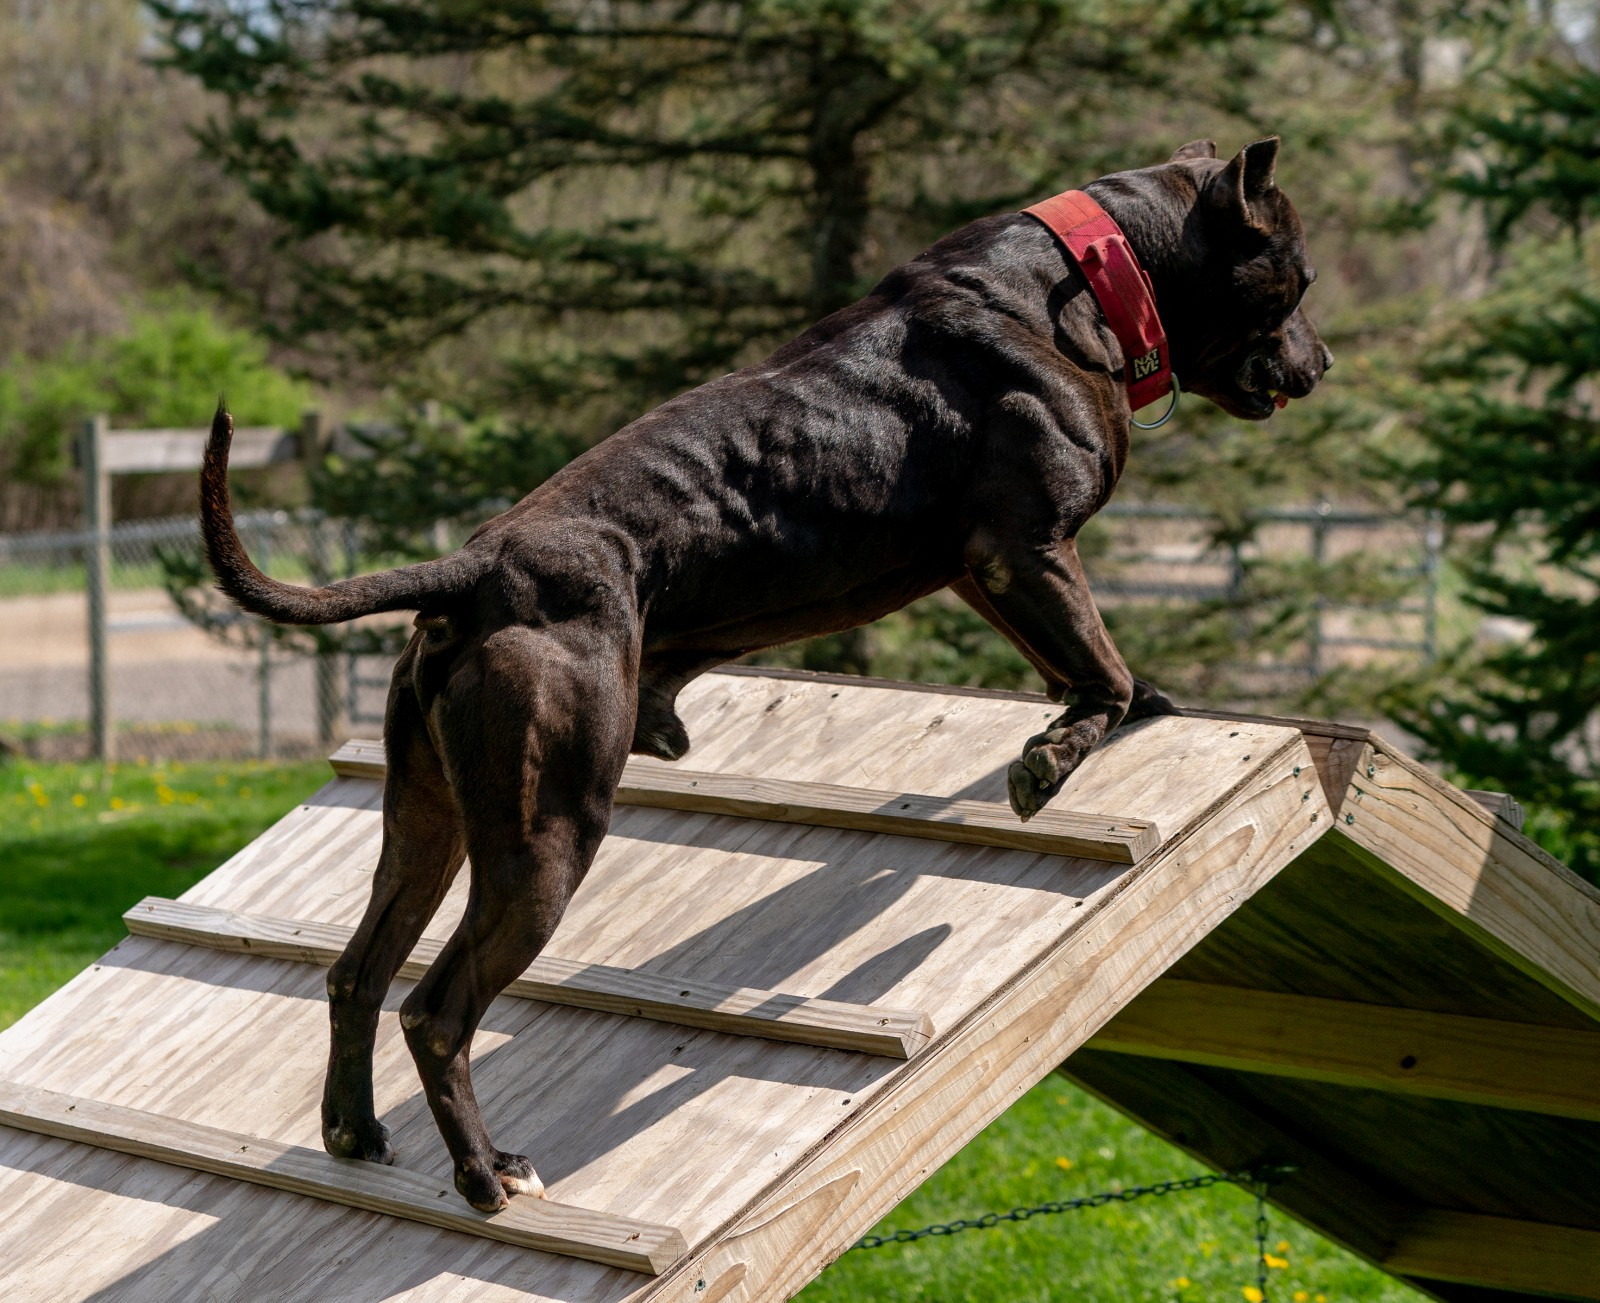 Unleashed Kennelz stud dog black XL pit bull Batman is climbing a wooden ramp as the sun reflects off his chiseled physique.